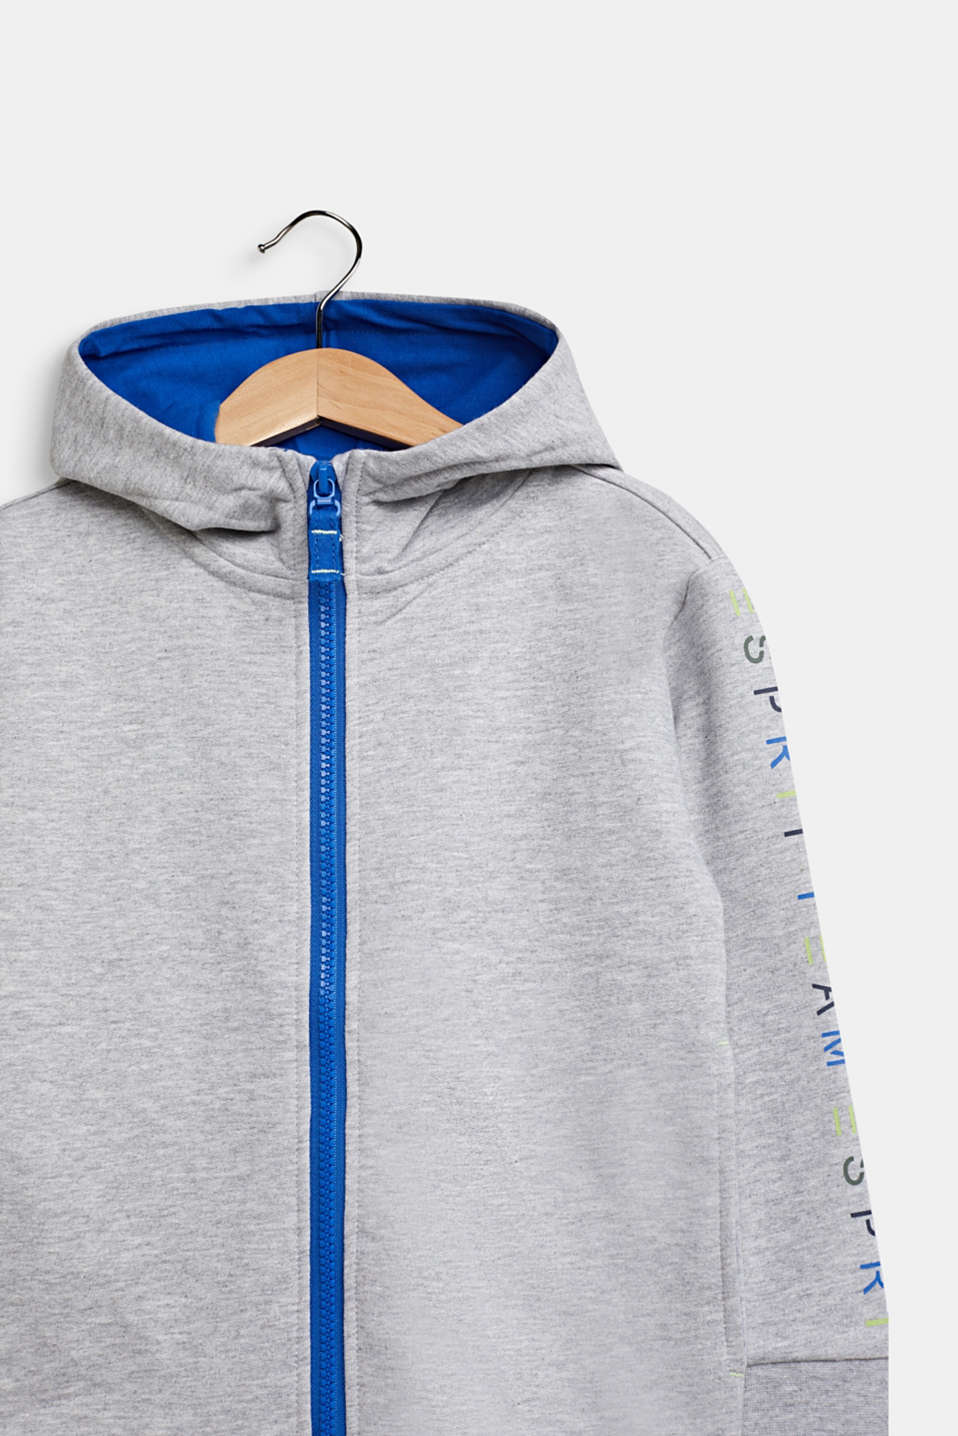 Sweatshirt cardigan with hood, 100% cotton, HEATHER SILVER, detail image number 2